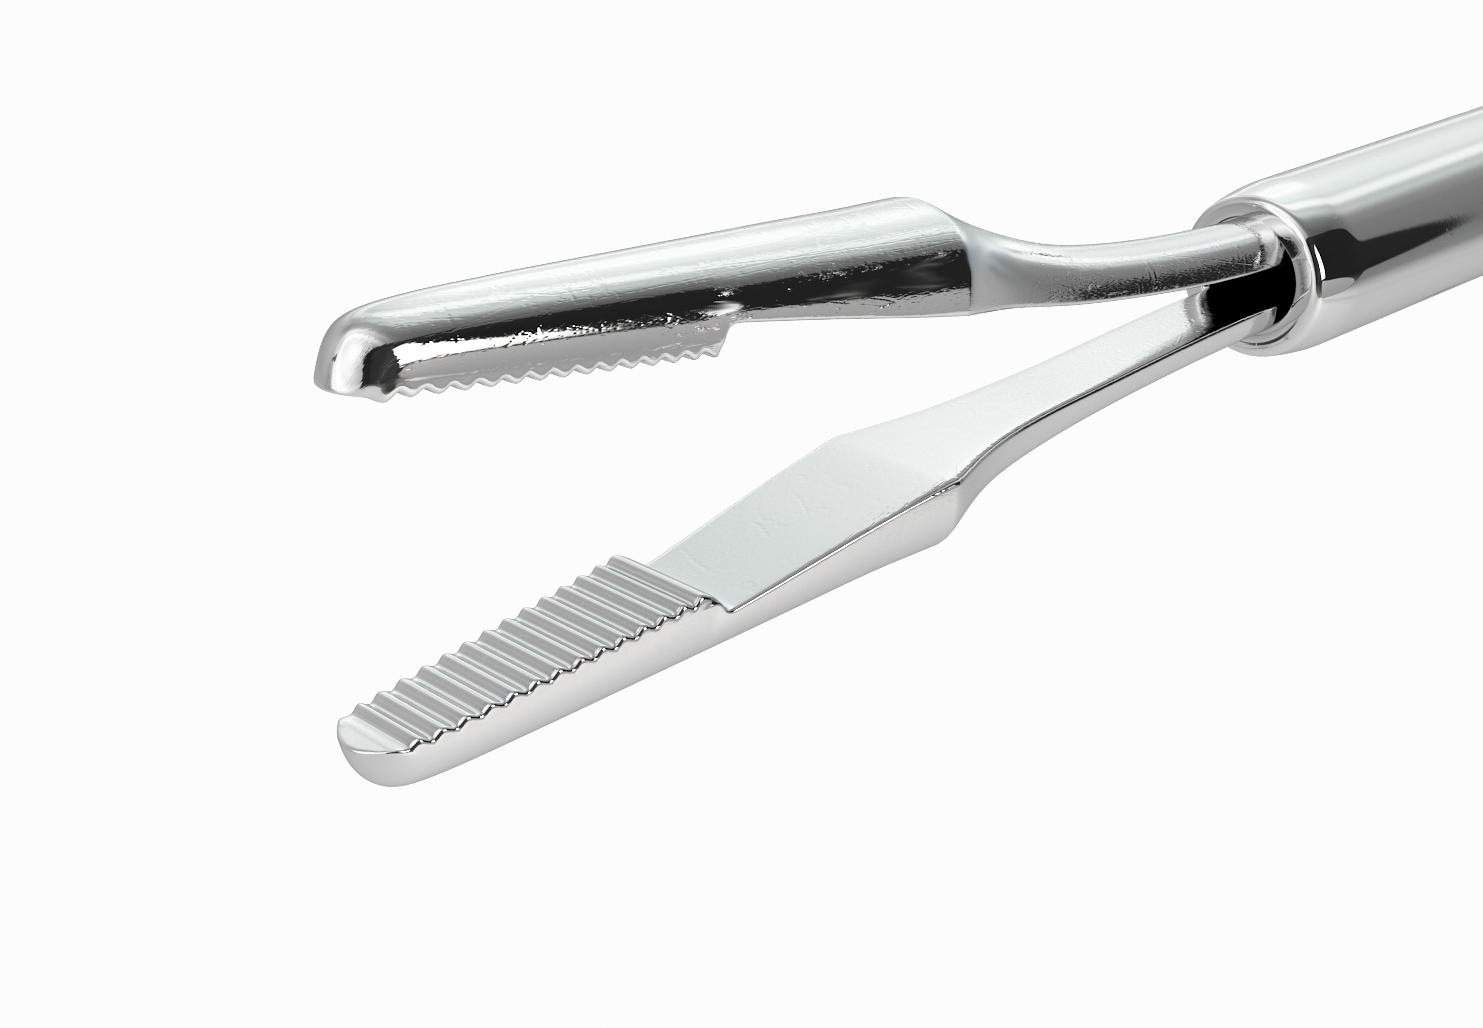 Ultra Peel 25G/27G microforceps: one touch, gentle membrane peeling